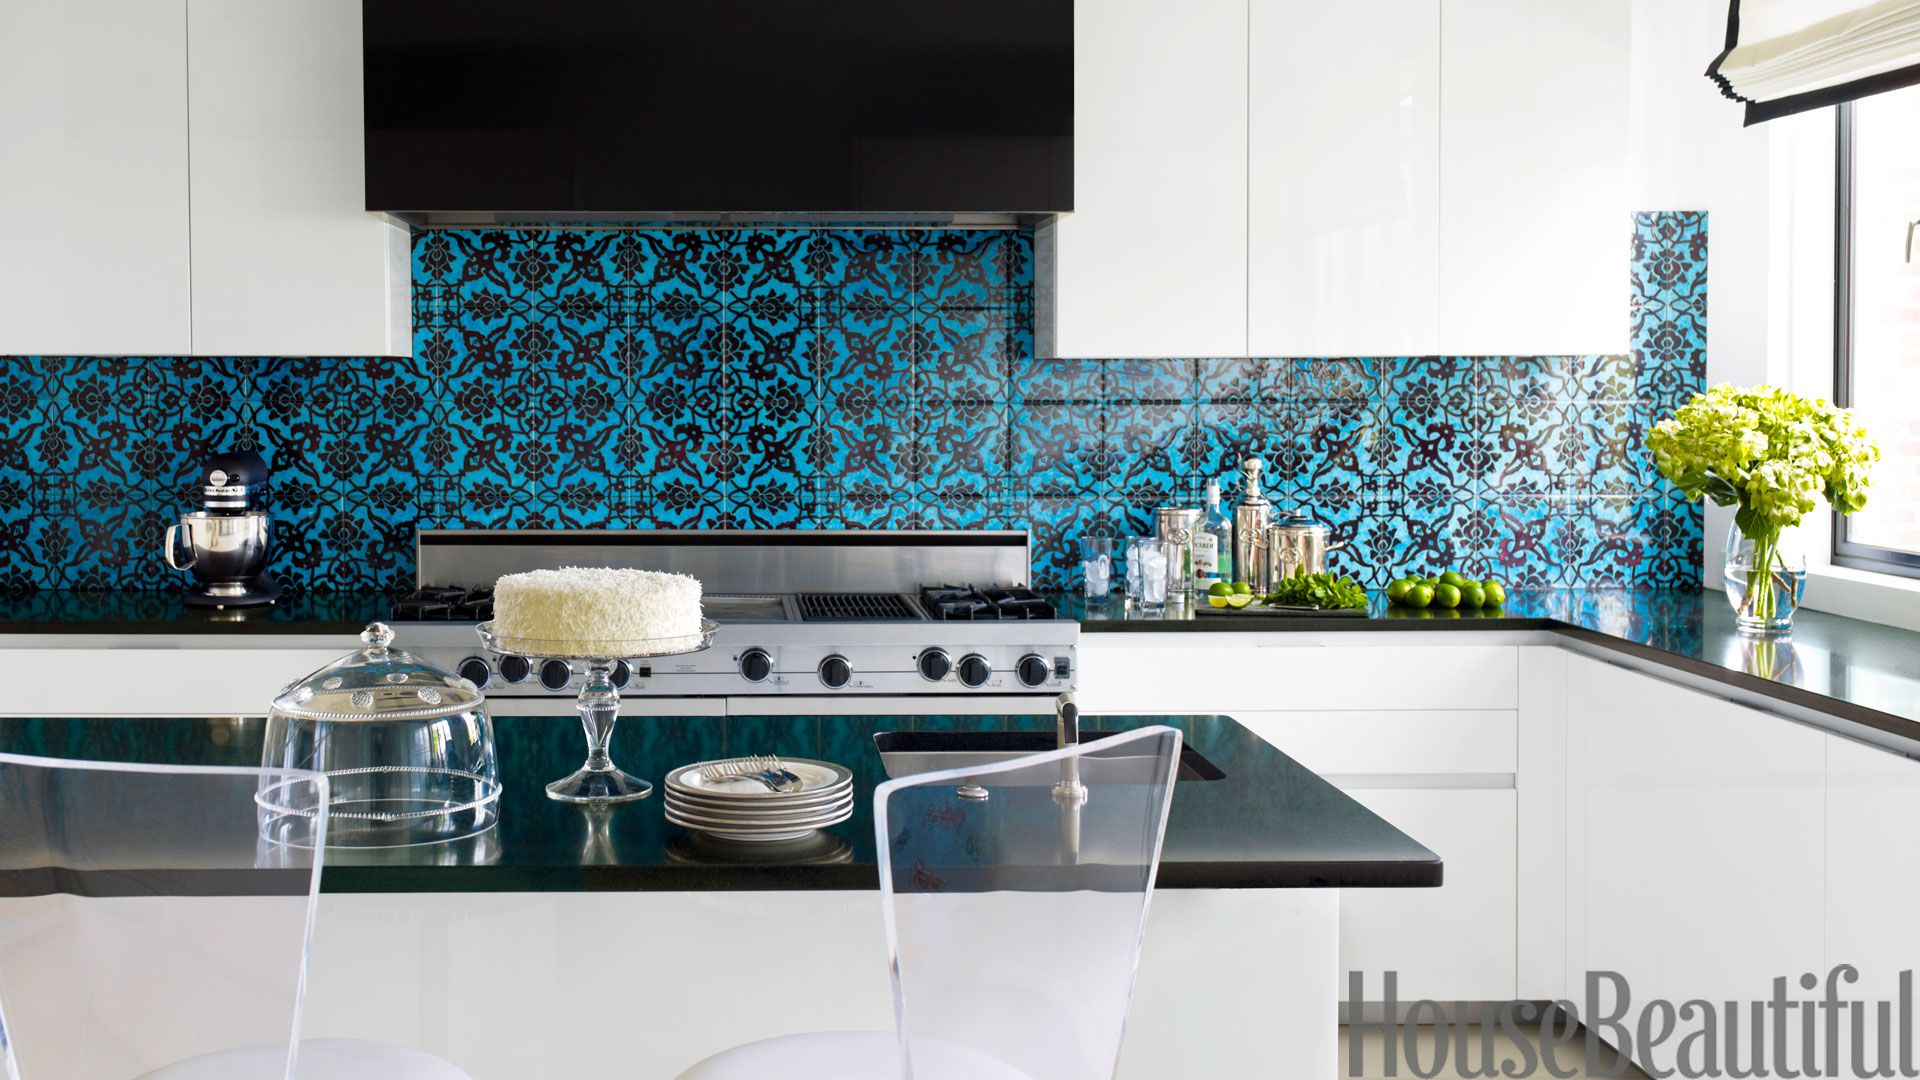 Wonderful Fun Backsplash Ideas Part - 6: 53 Best Kitchen Backsplash Ideas - Tile Designs For Kitchen Backsplashes